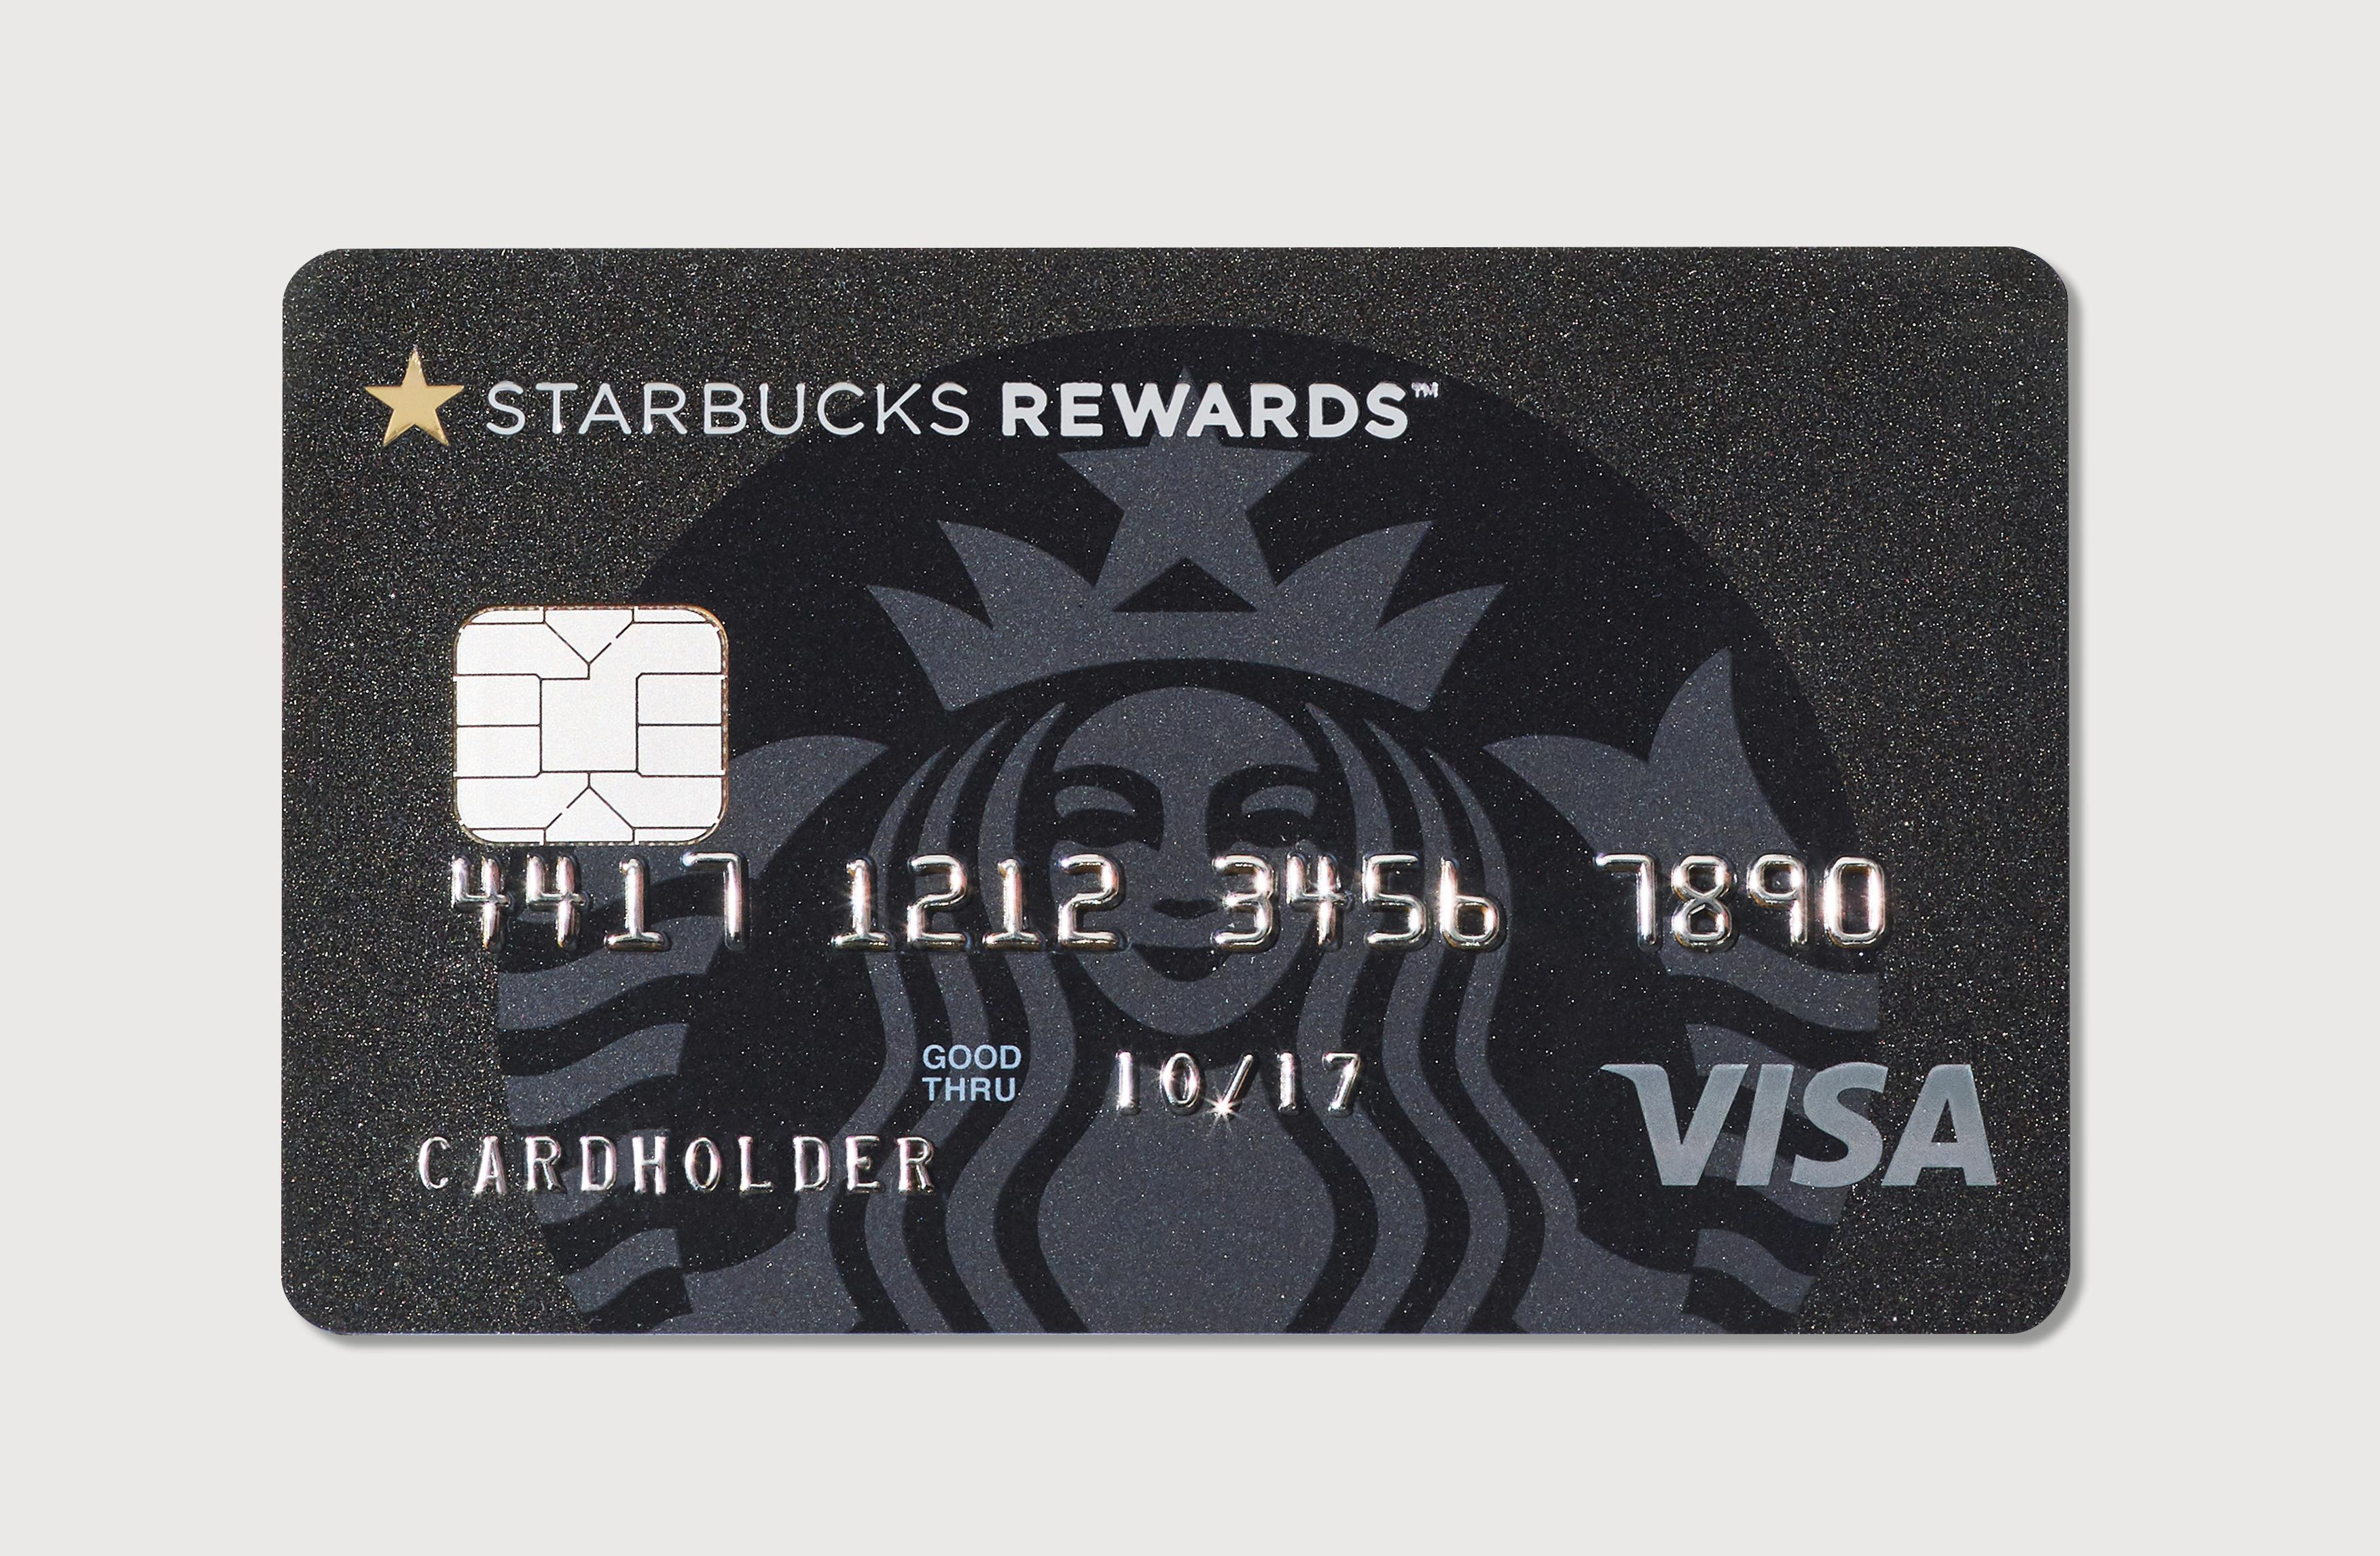 Starbucks launches credit card, hoping to jolt sales | The Spokesman ...